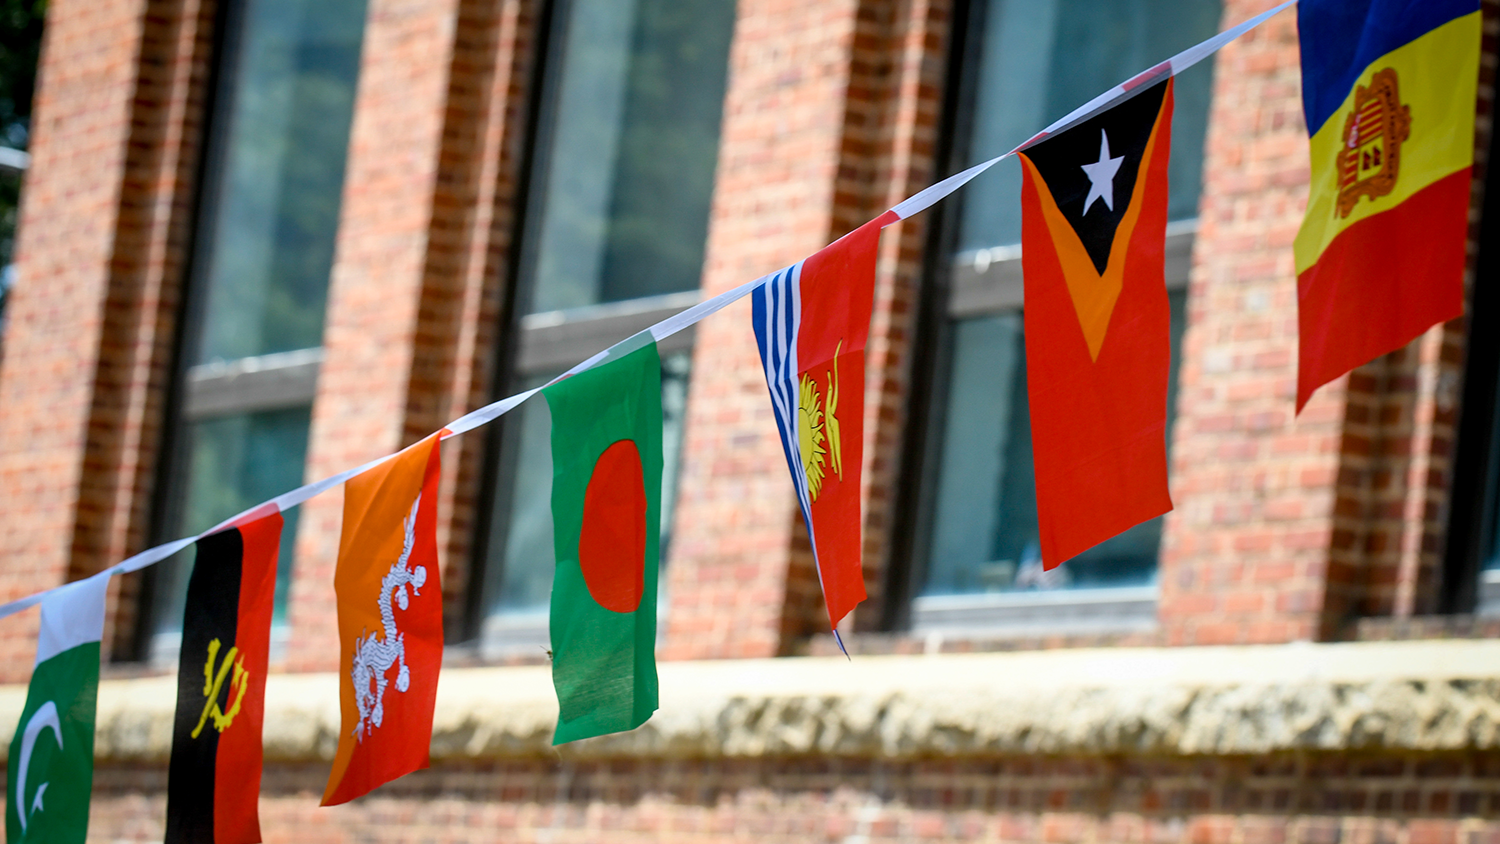 Flags are hanging between Thompkins Hall and Primrose Hall.